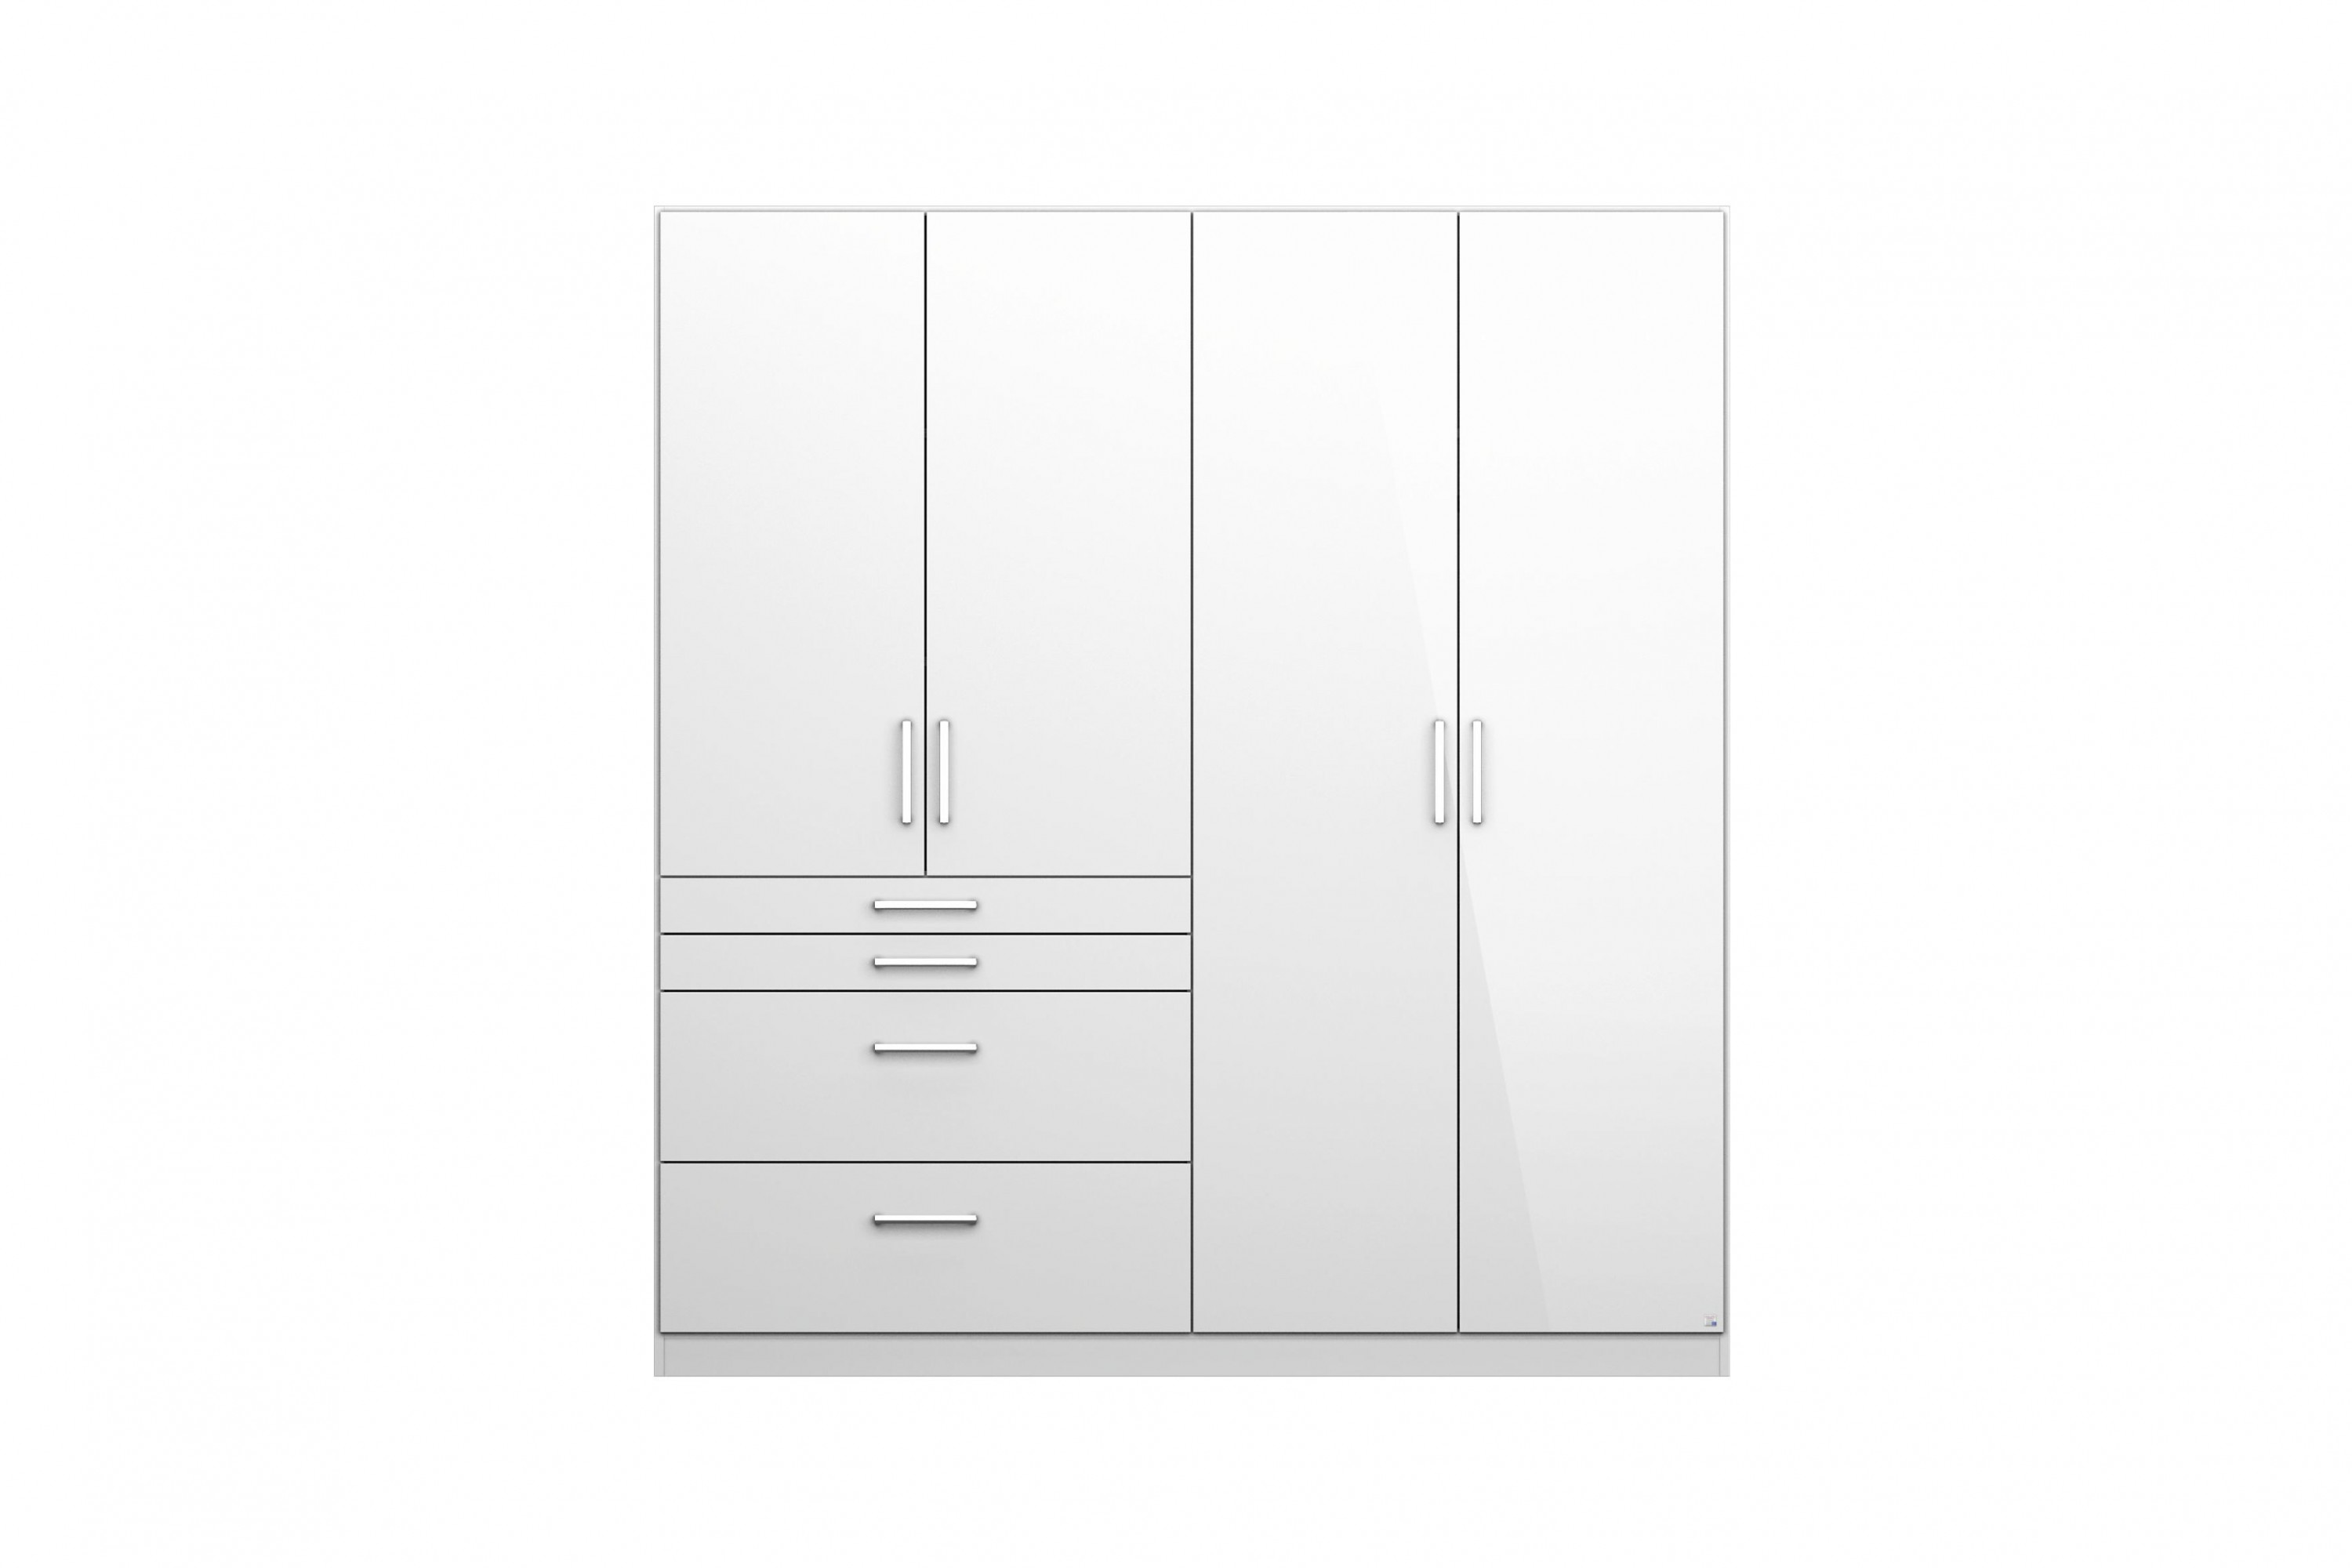 kleiderschrank lauri 4 wei hochglanz 4 t ren b 181 cm kleiderschr nke. Black Bedroom Furniture Sets. Home Design Ideas